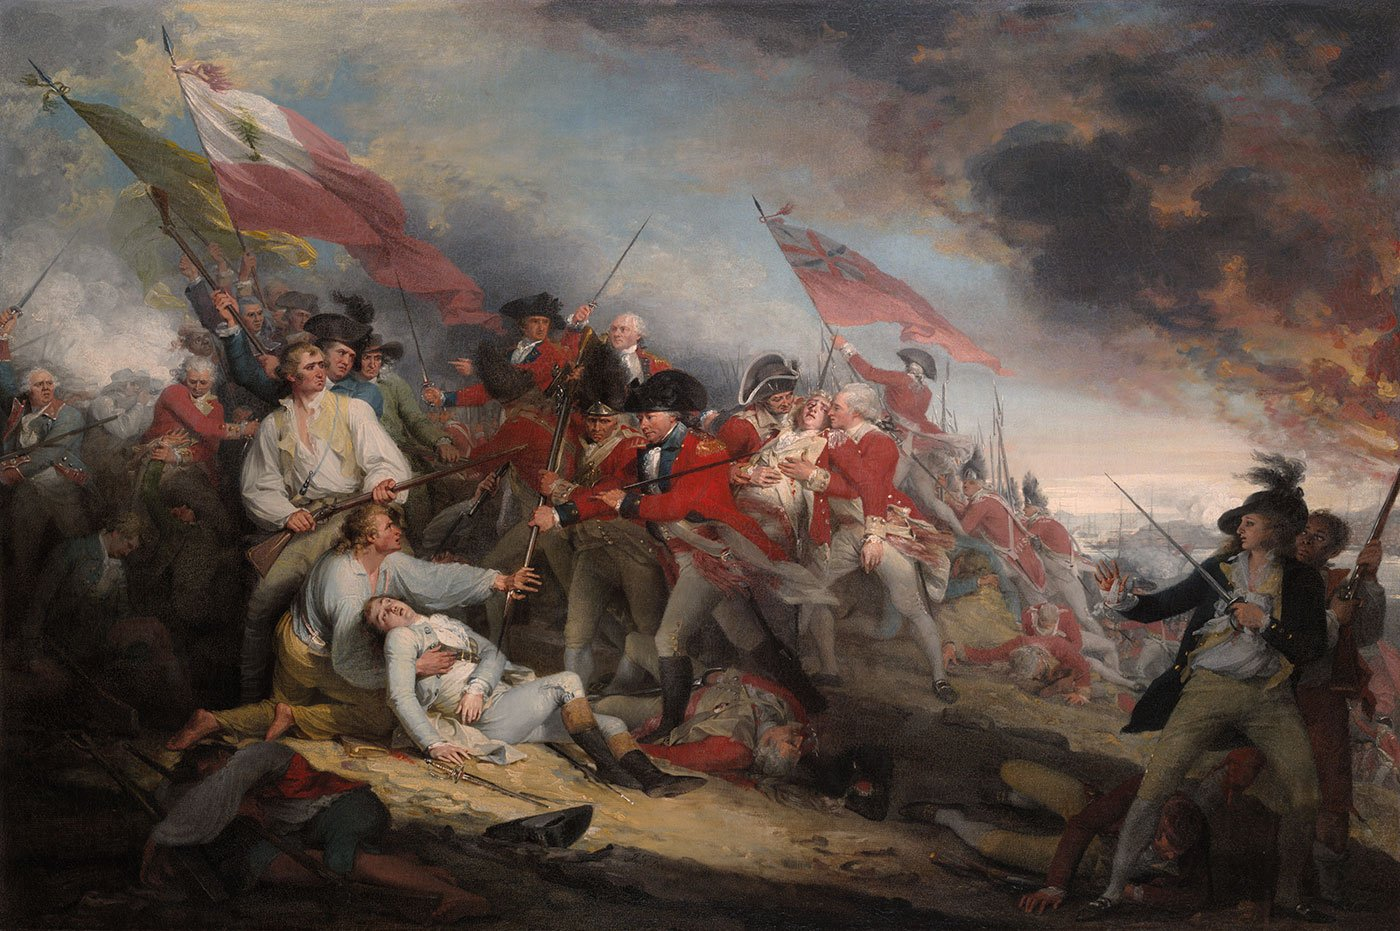 The Battle of Bunker Hill painting by John Trumbull